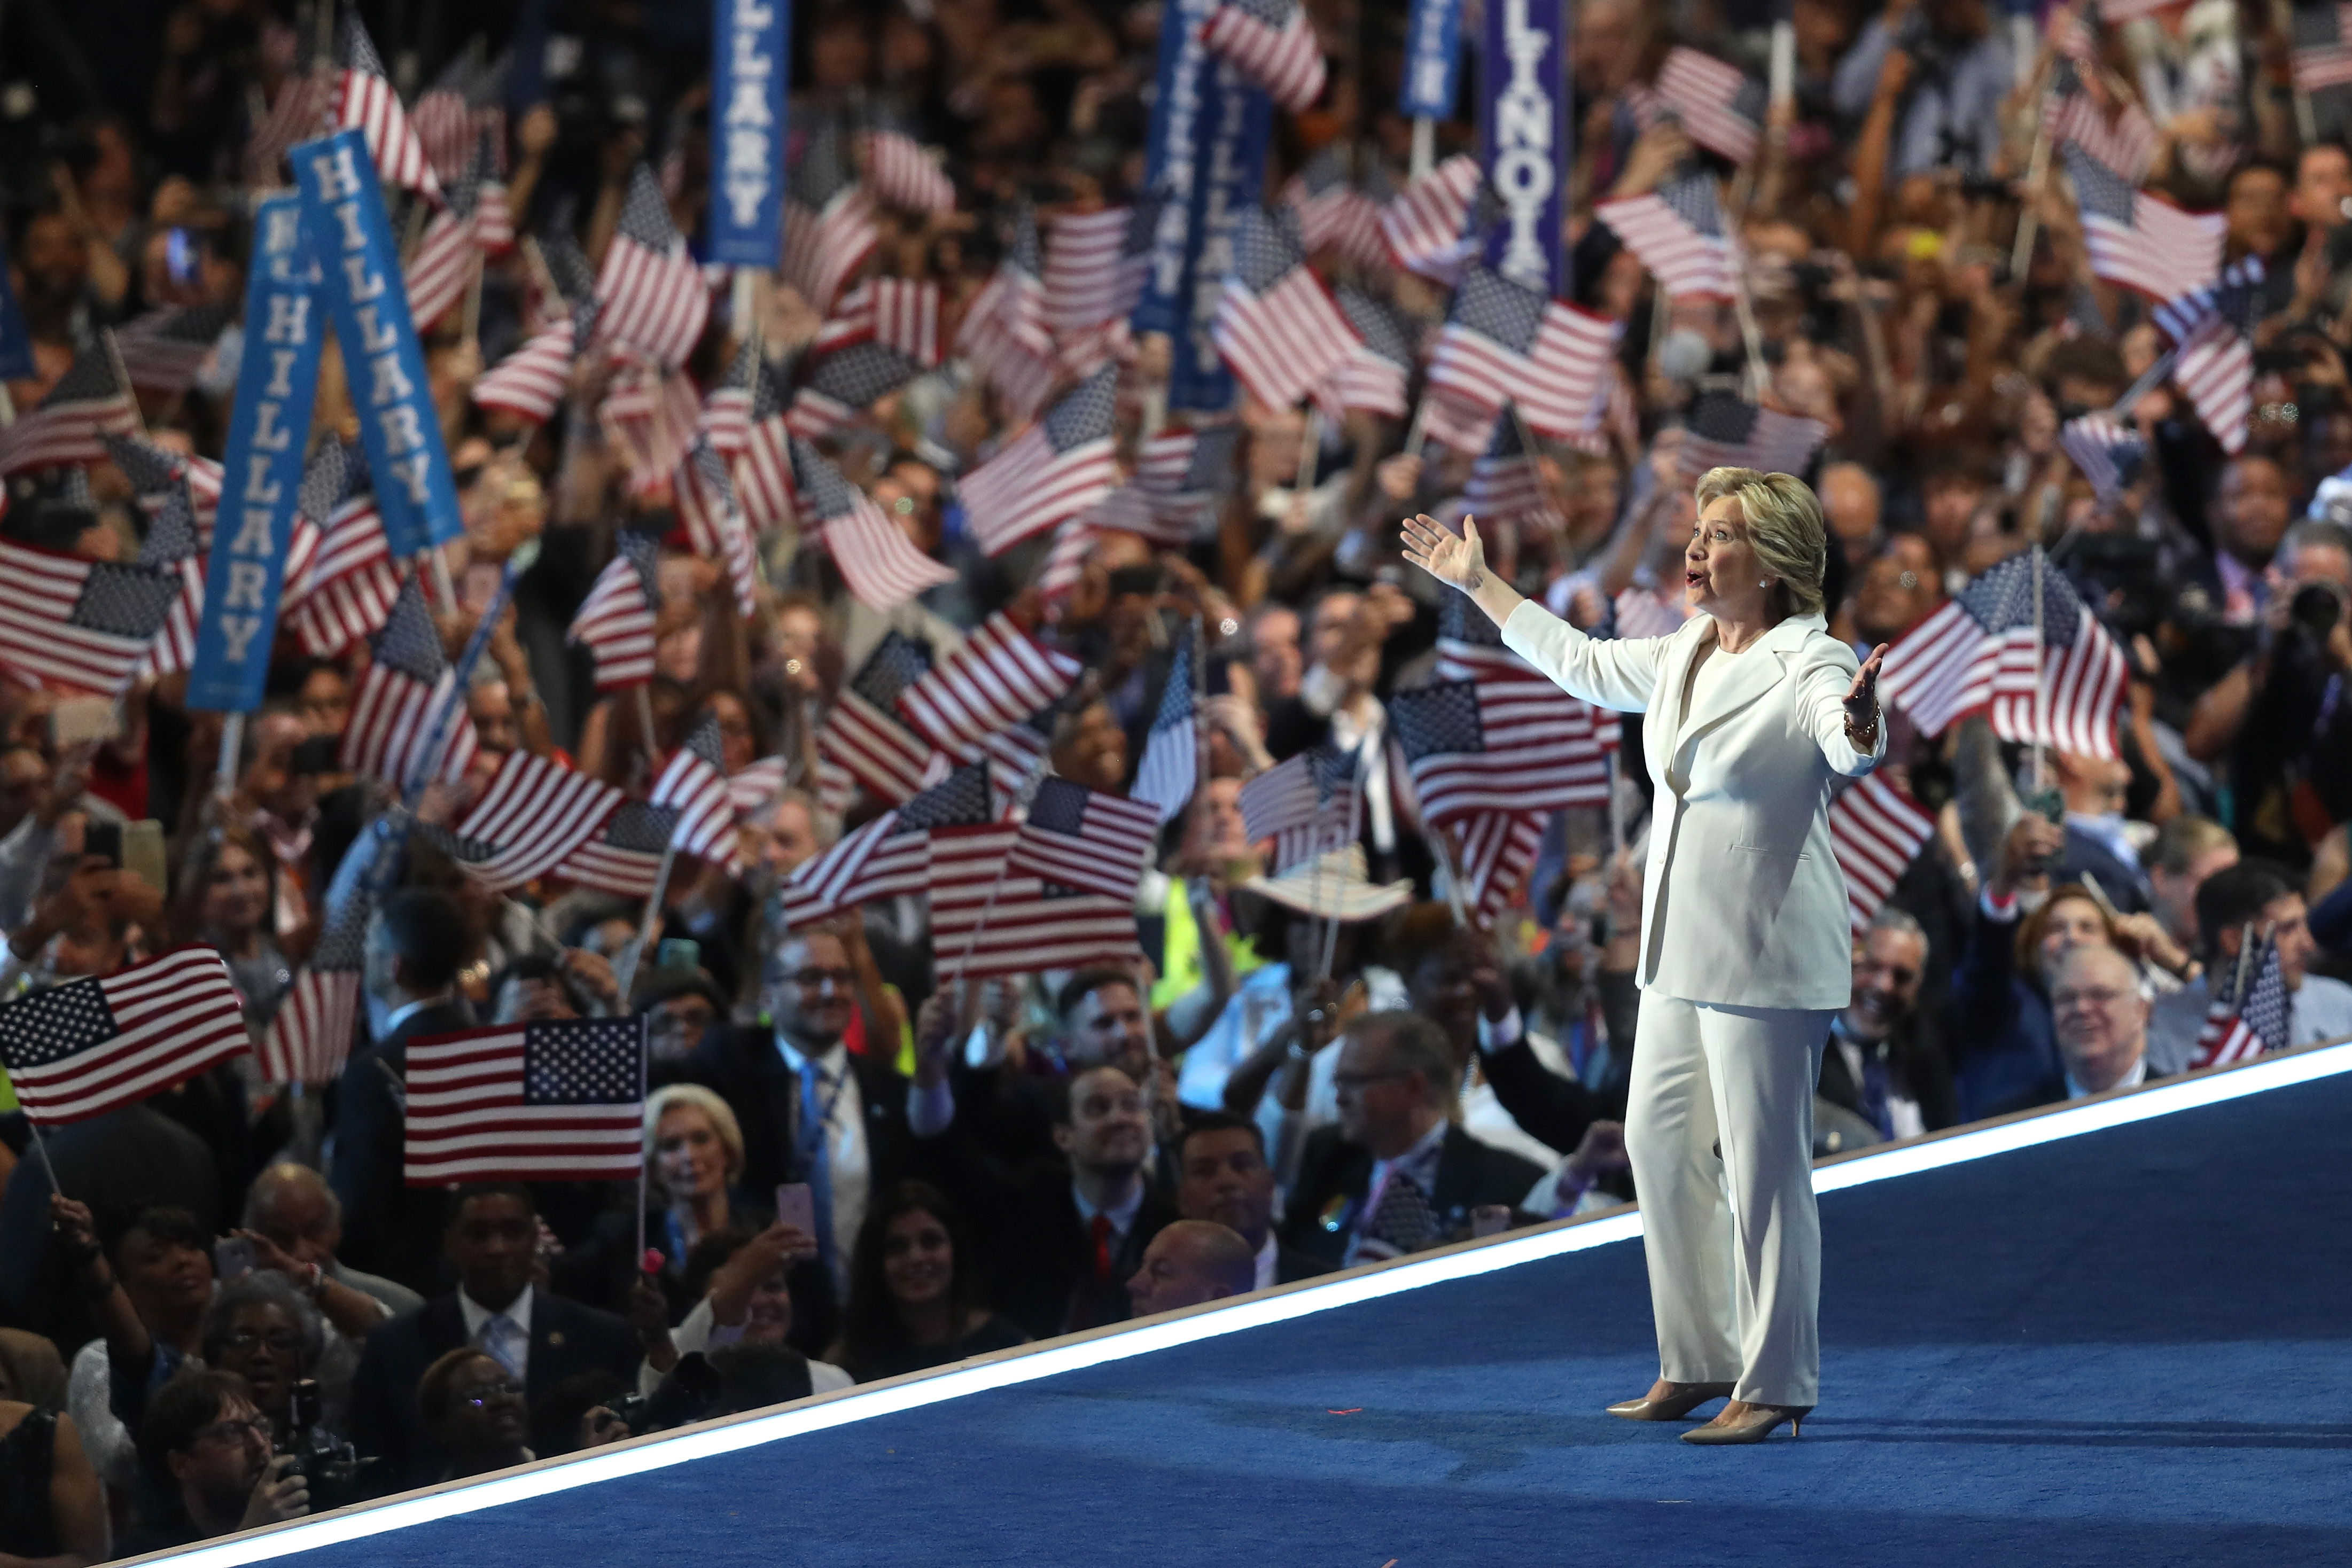 PHILADELPHIA, PA - JULY 28:  Democratic presidential nominee Hillary Clinton acknowledges the crowd as she arrives on stage during the fourth day of the Democratic National Convention at the Wells Fargo Center, July 28, 2016 in Philadelphia, Pennsylvania. Democratic presidential candidate Hillary Clinton received the number of votes needed to secure the party's nomination. An estimated 50,000 people are expected in Philadelphia, including hundreds of protesters and members of the media. The four-day Democratic National Convention kicked off July 25.  (Photo by Joe Raedle/Getty Images)